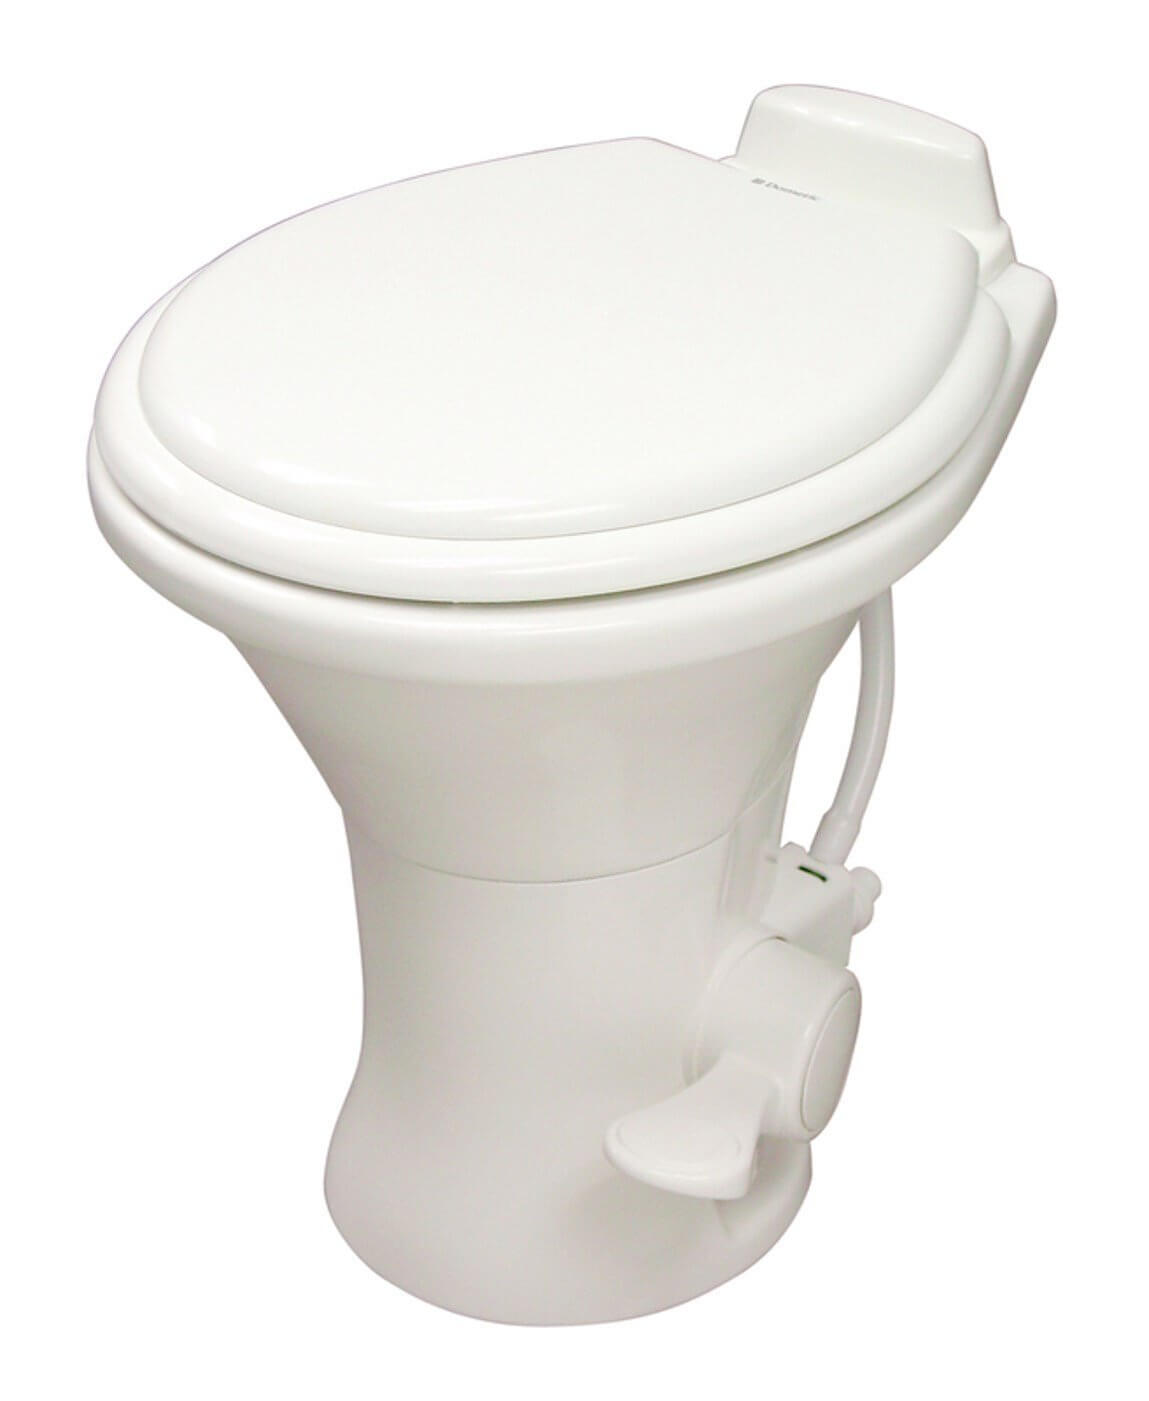 Best toilet on the market reviews - Dometic 310 Series Standard Height Toilet